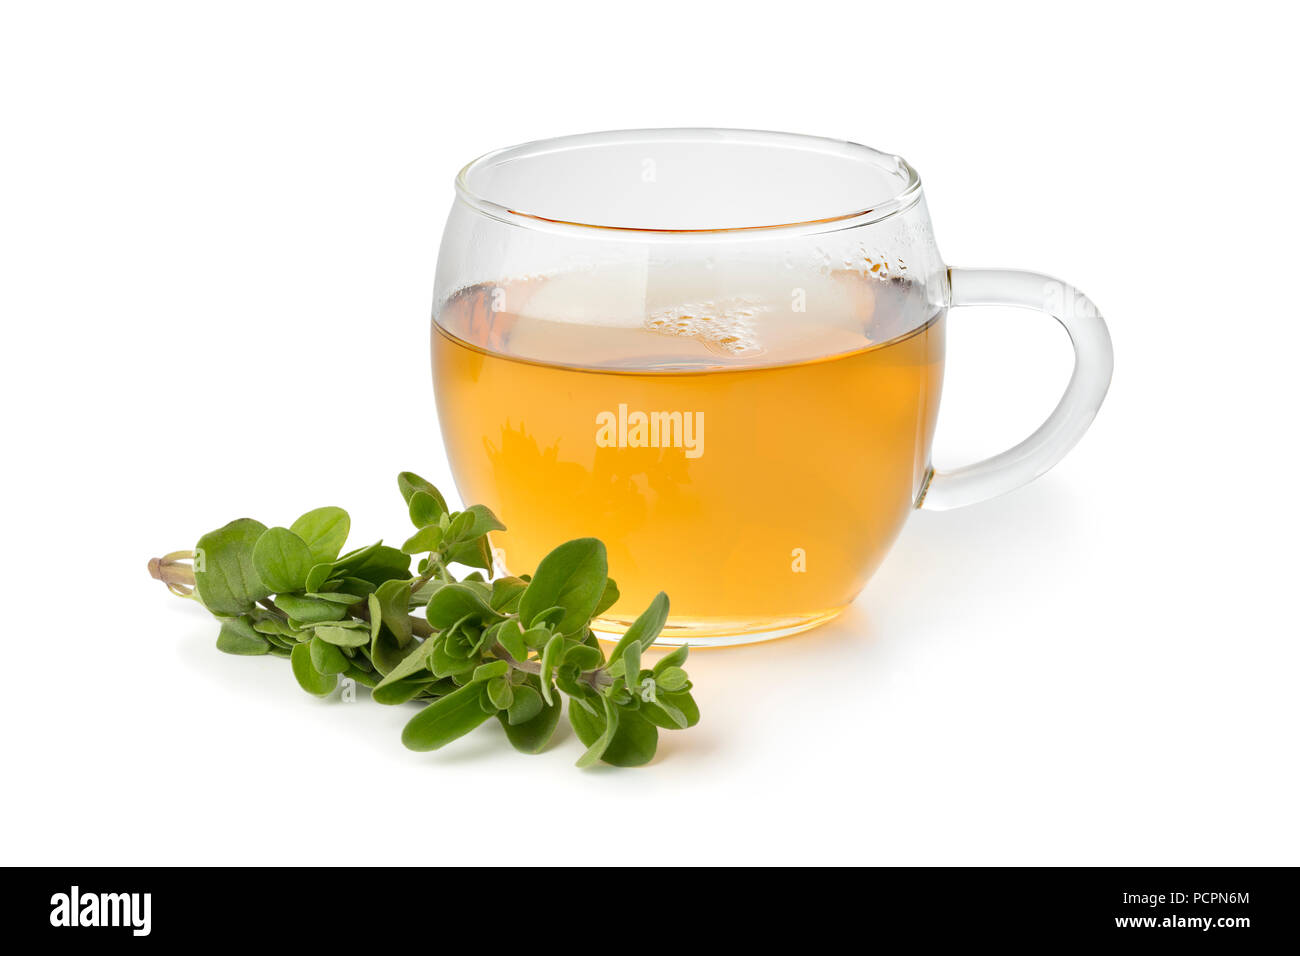 Glass cup of herbal tea and a twig of fresh marjoram isolated on white background - Stock Image